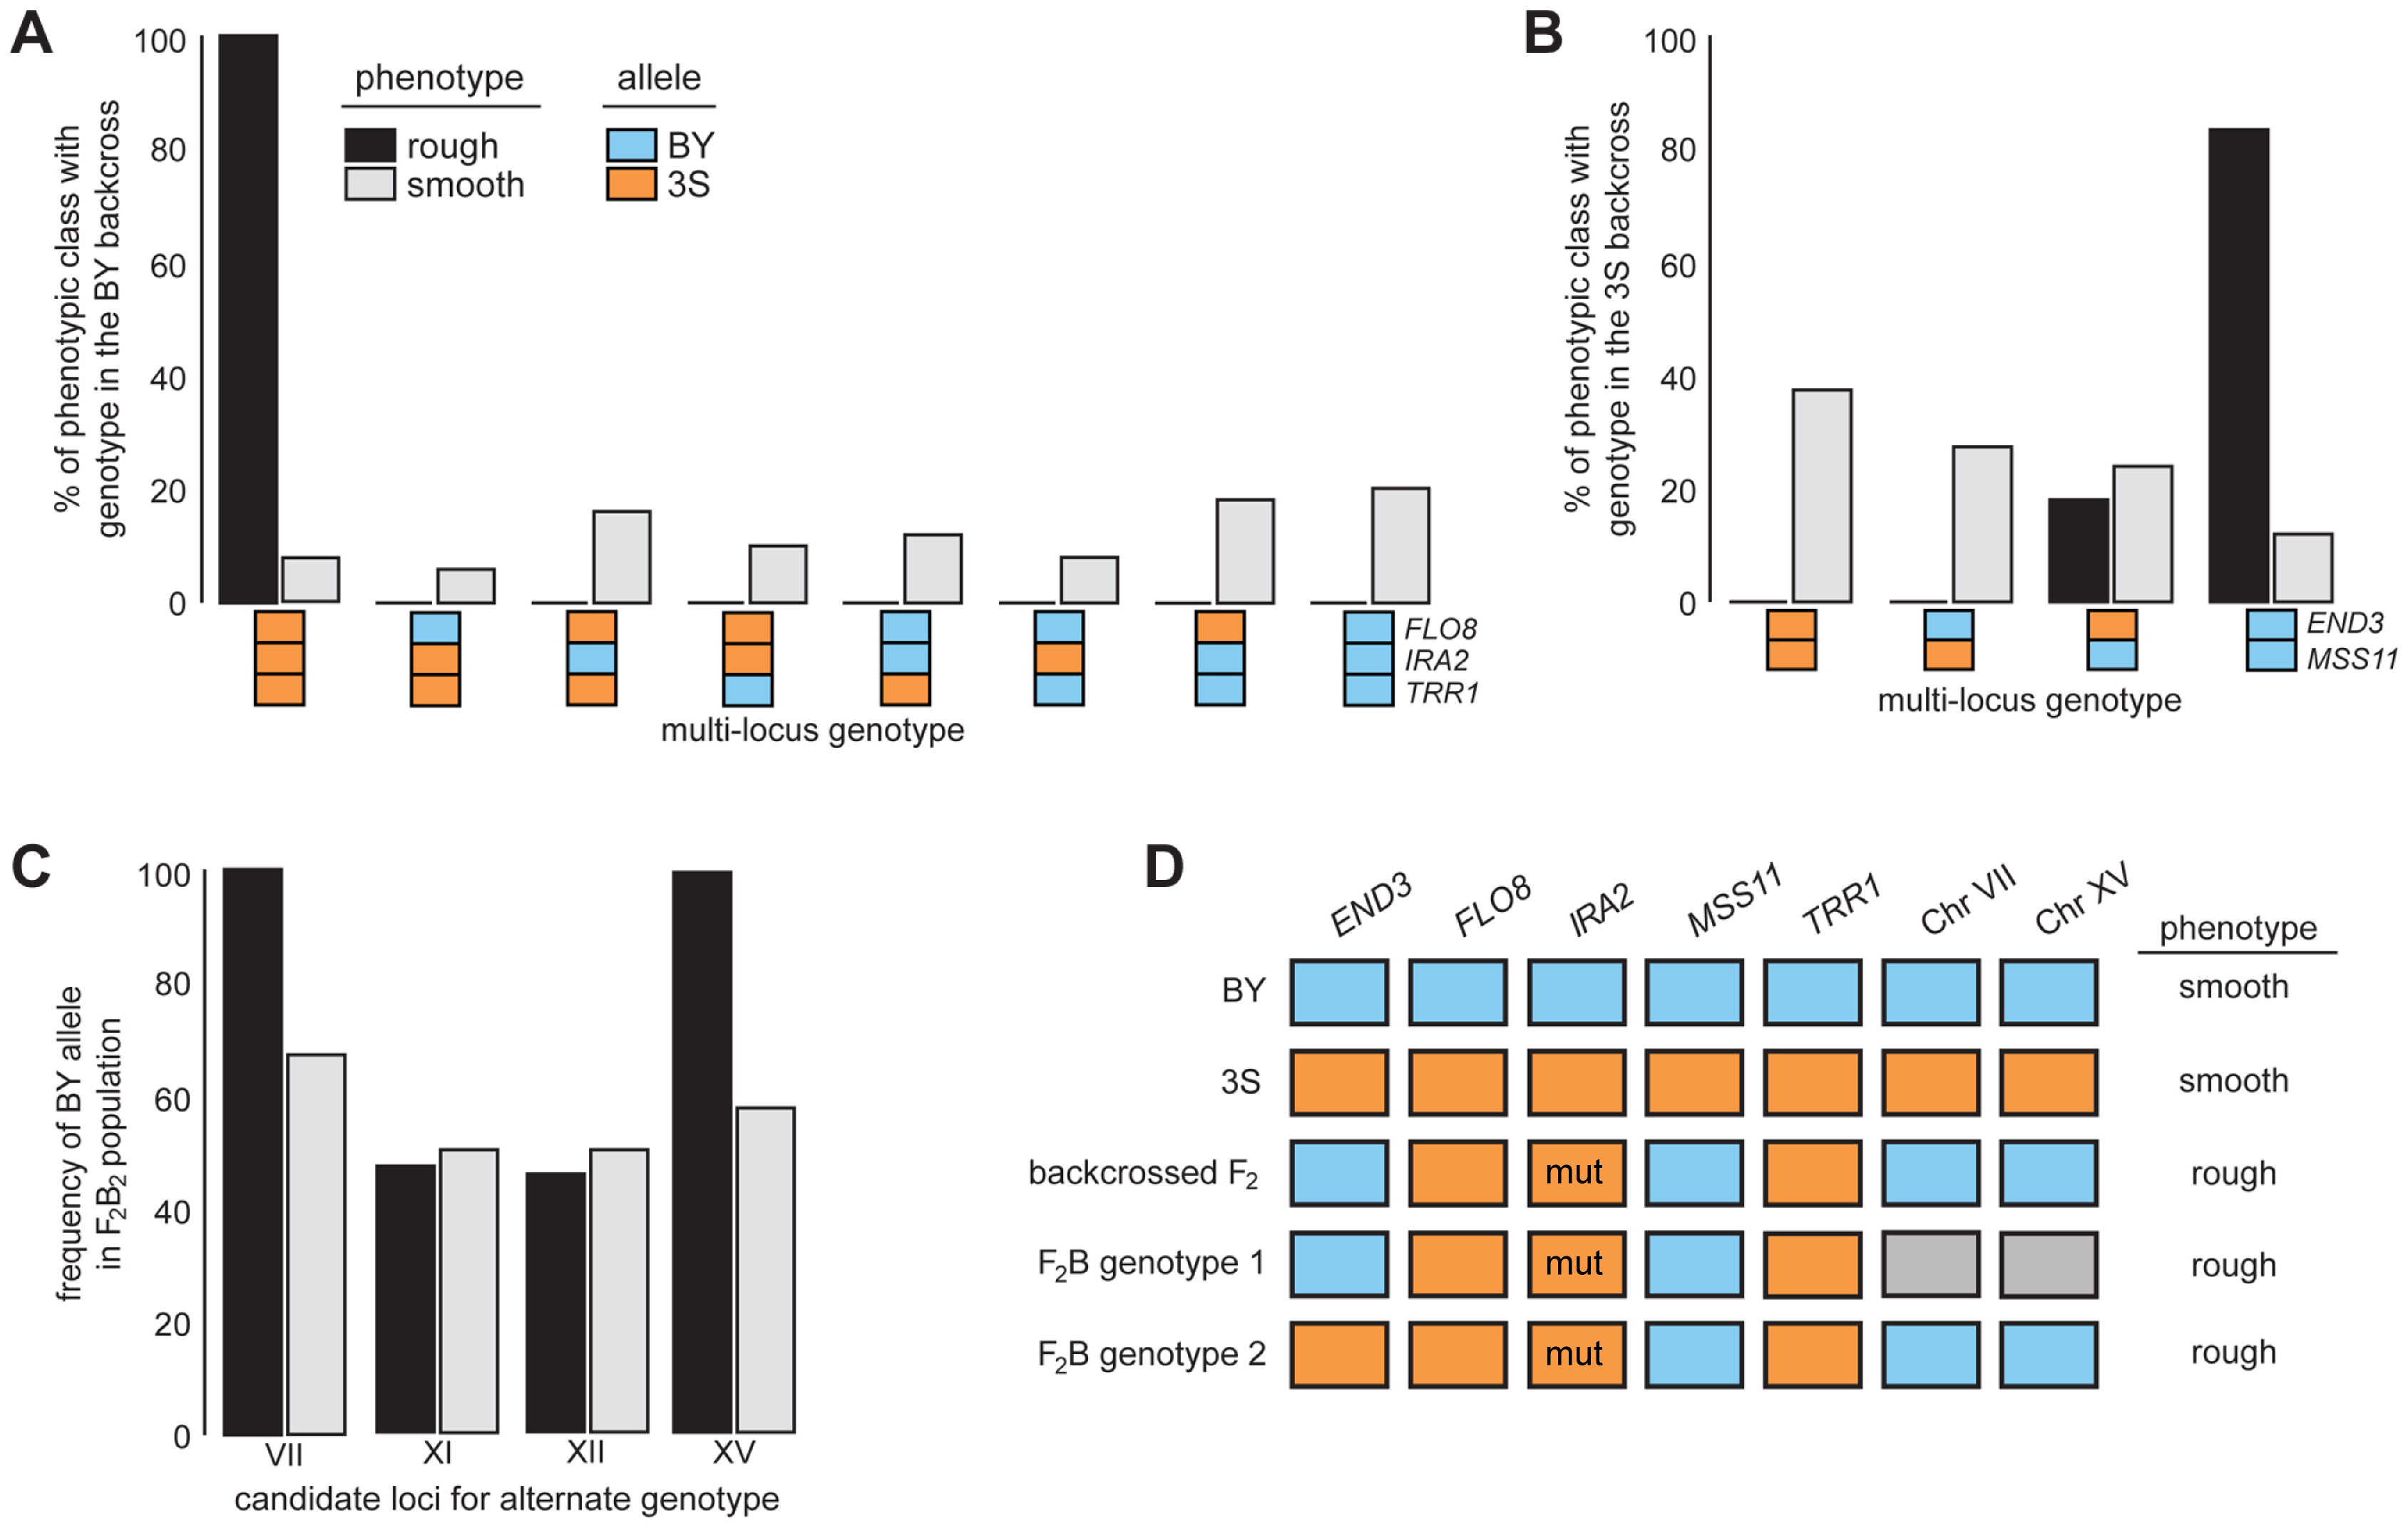 Segregation analysis of causal genes and identification of loci that complement <i>END3</i><sup>3S</sup>.